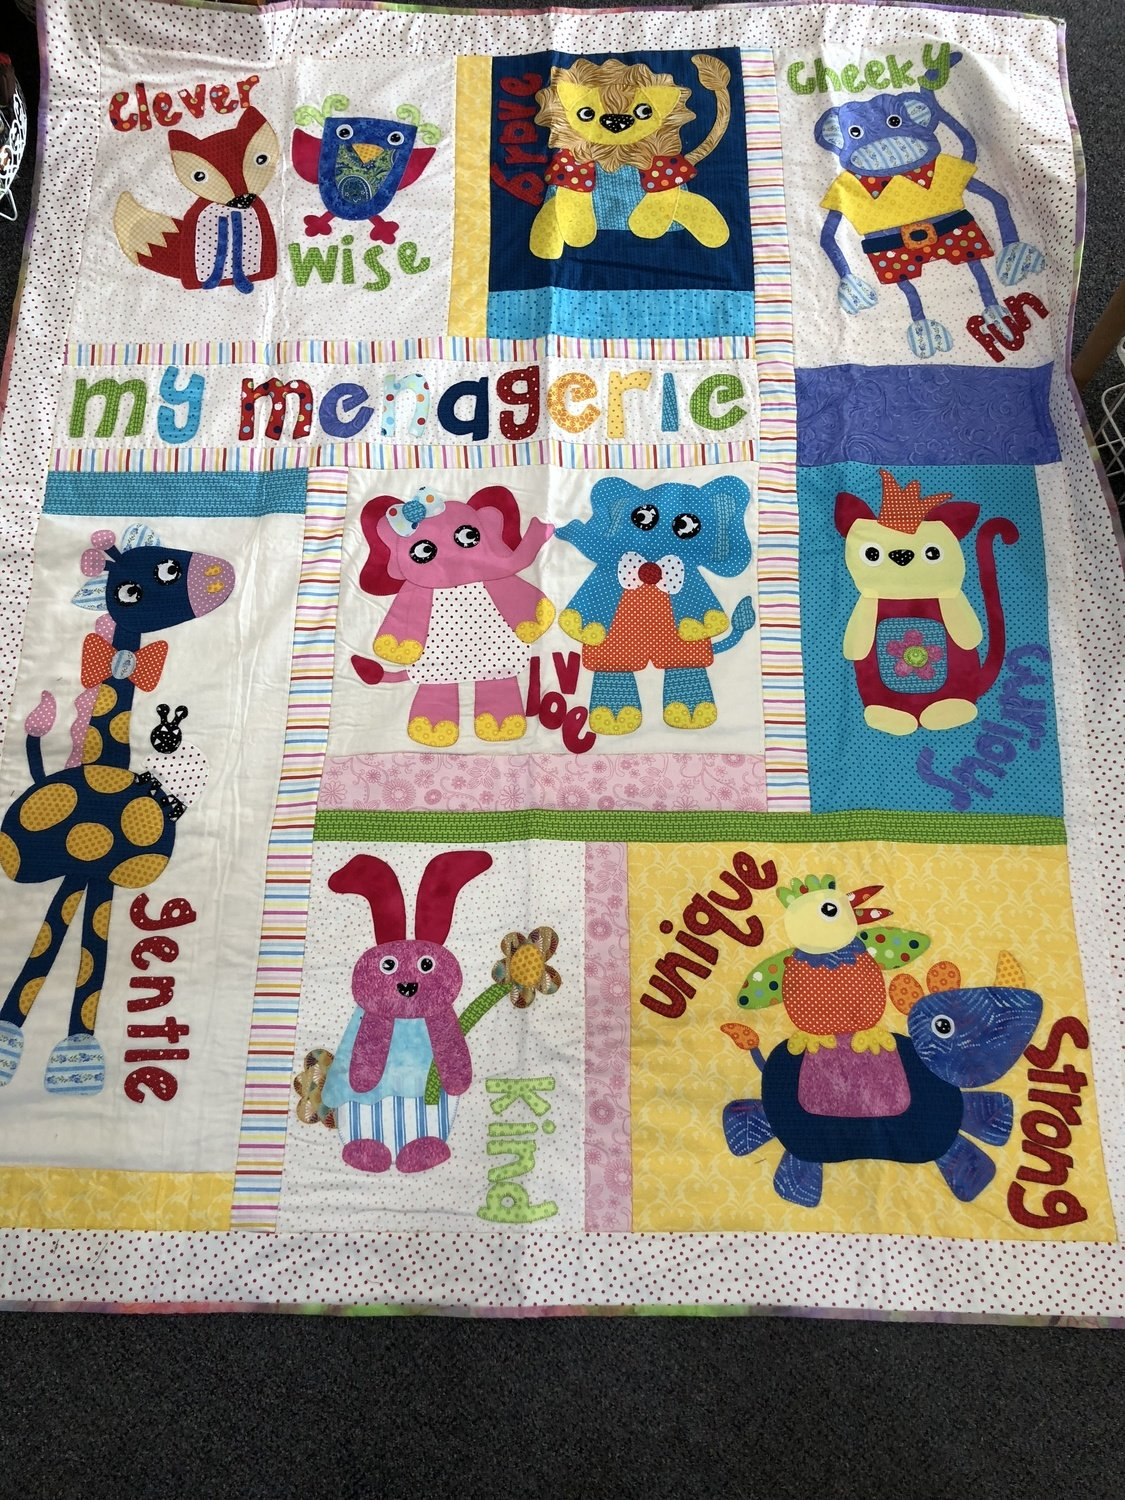 My Menagerie - Finished quilt